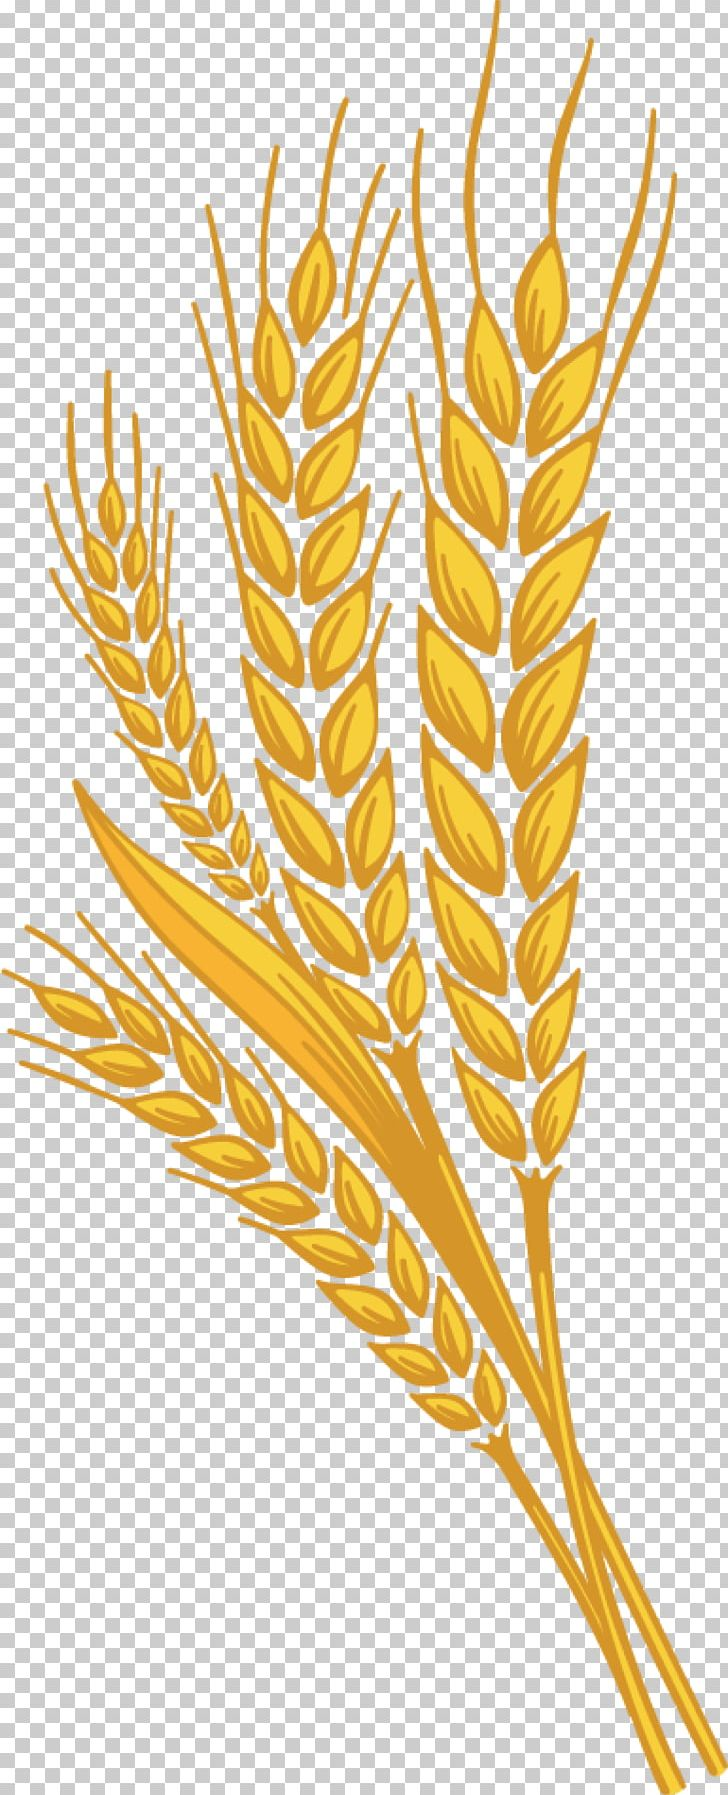 Beer png adobe acrobat. Wheat clipart branch